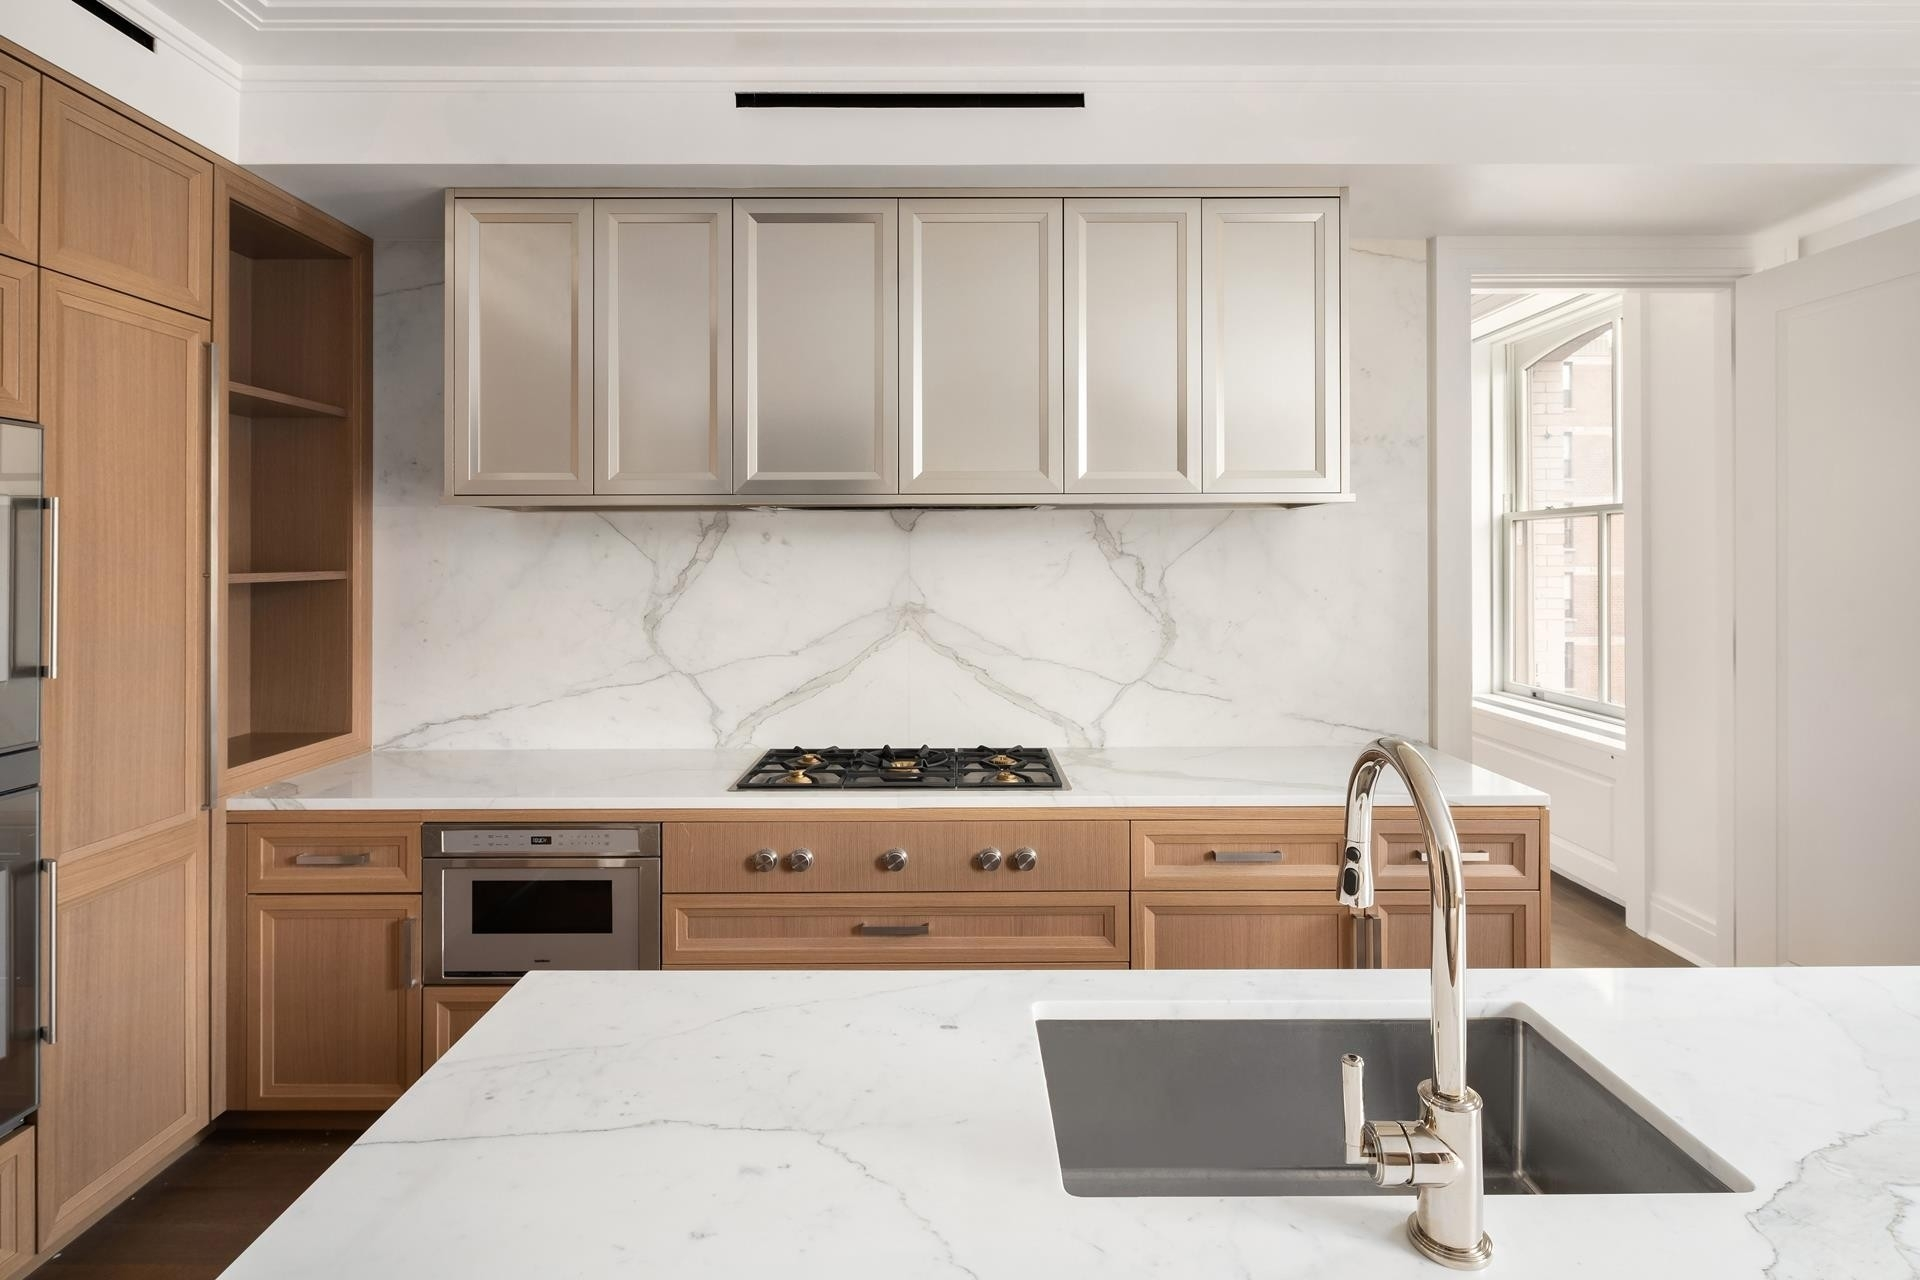 4. Condominiums for Sale at The Belnord, 225 West 86th St, 1103 Upper West Side, New York, NY 10024